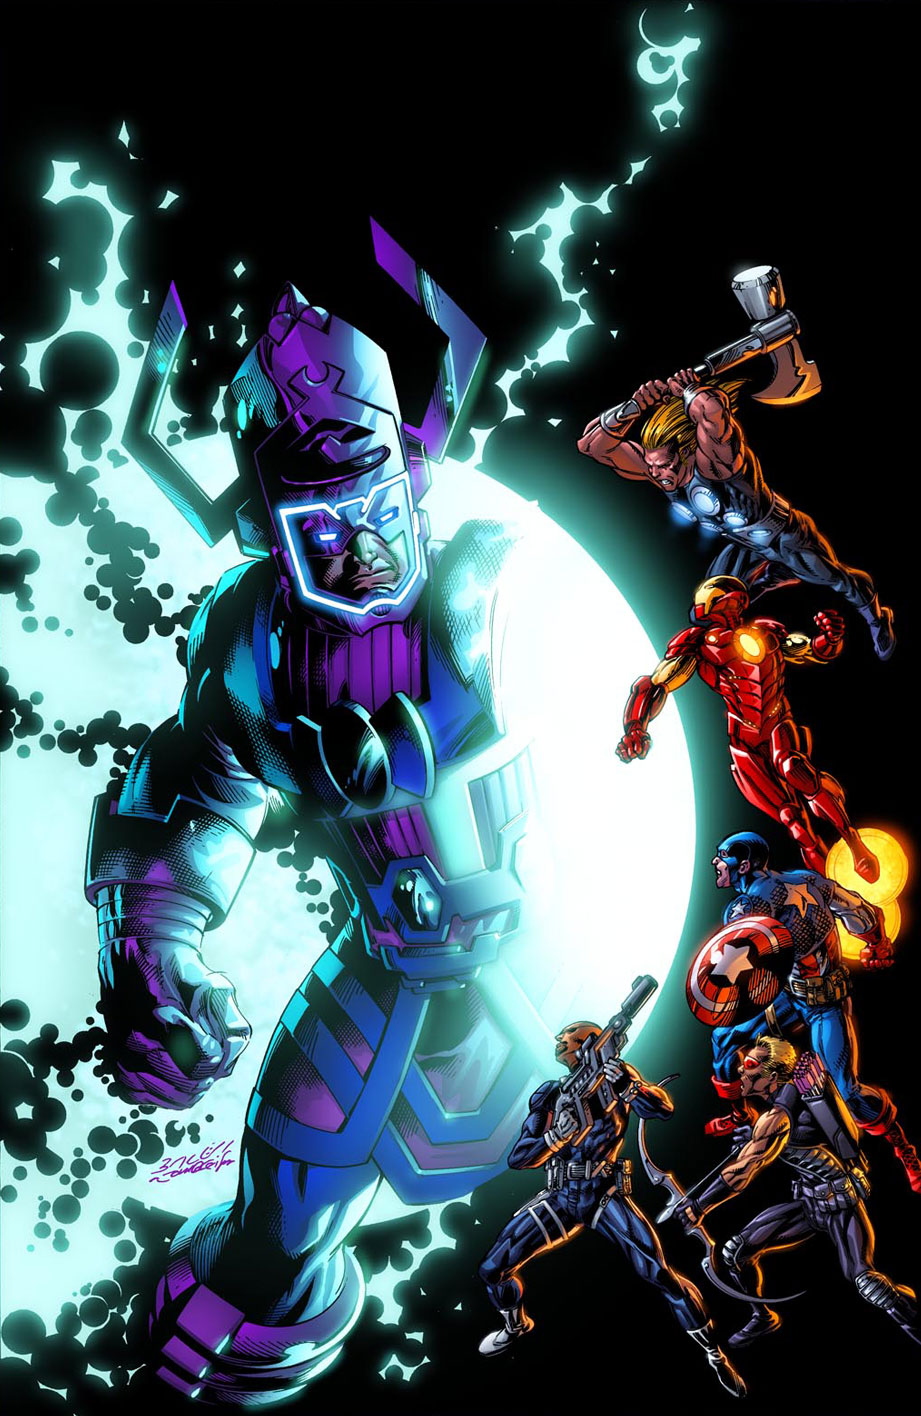 Cataclysm: The Ultimates Last Stand